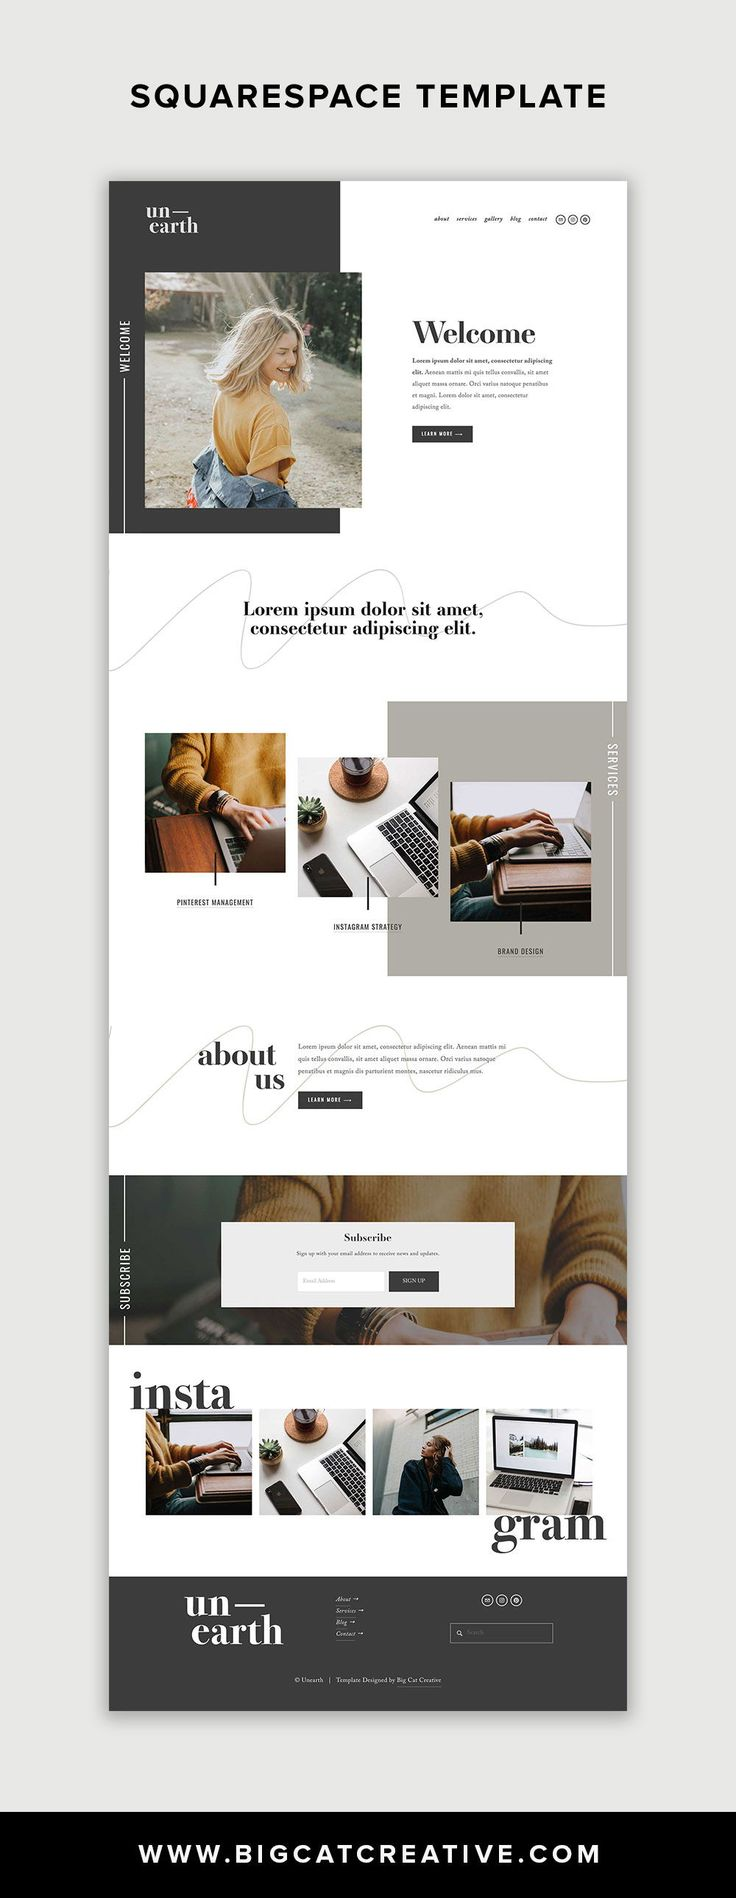 Unearth Squarespace Template is a modern and artis…